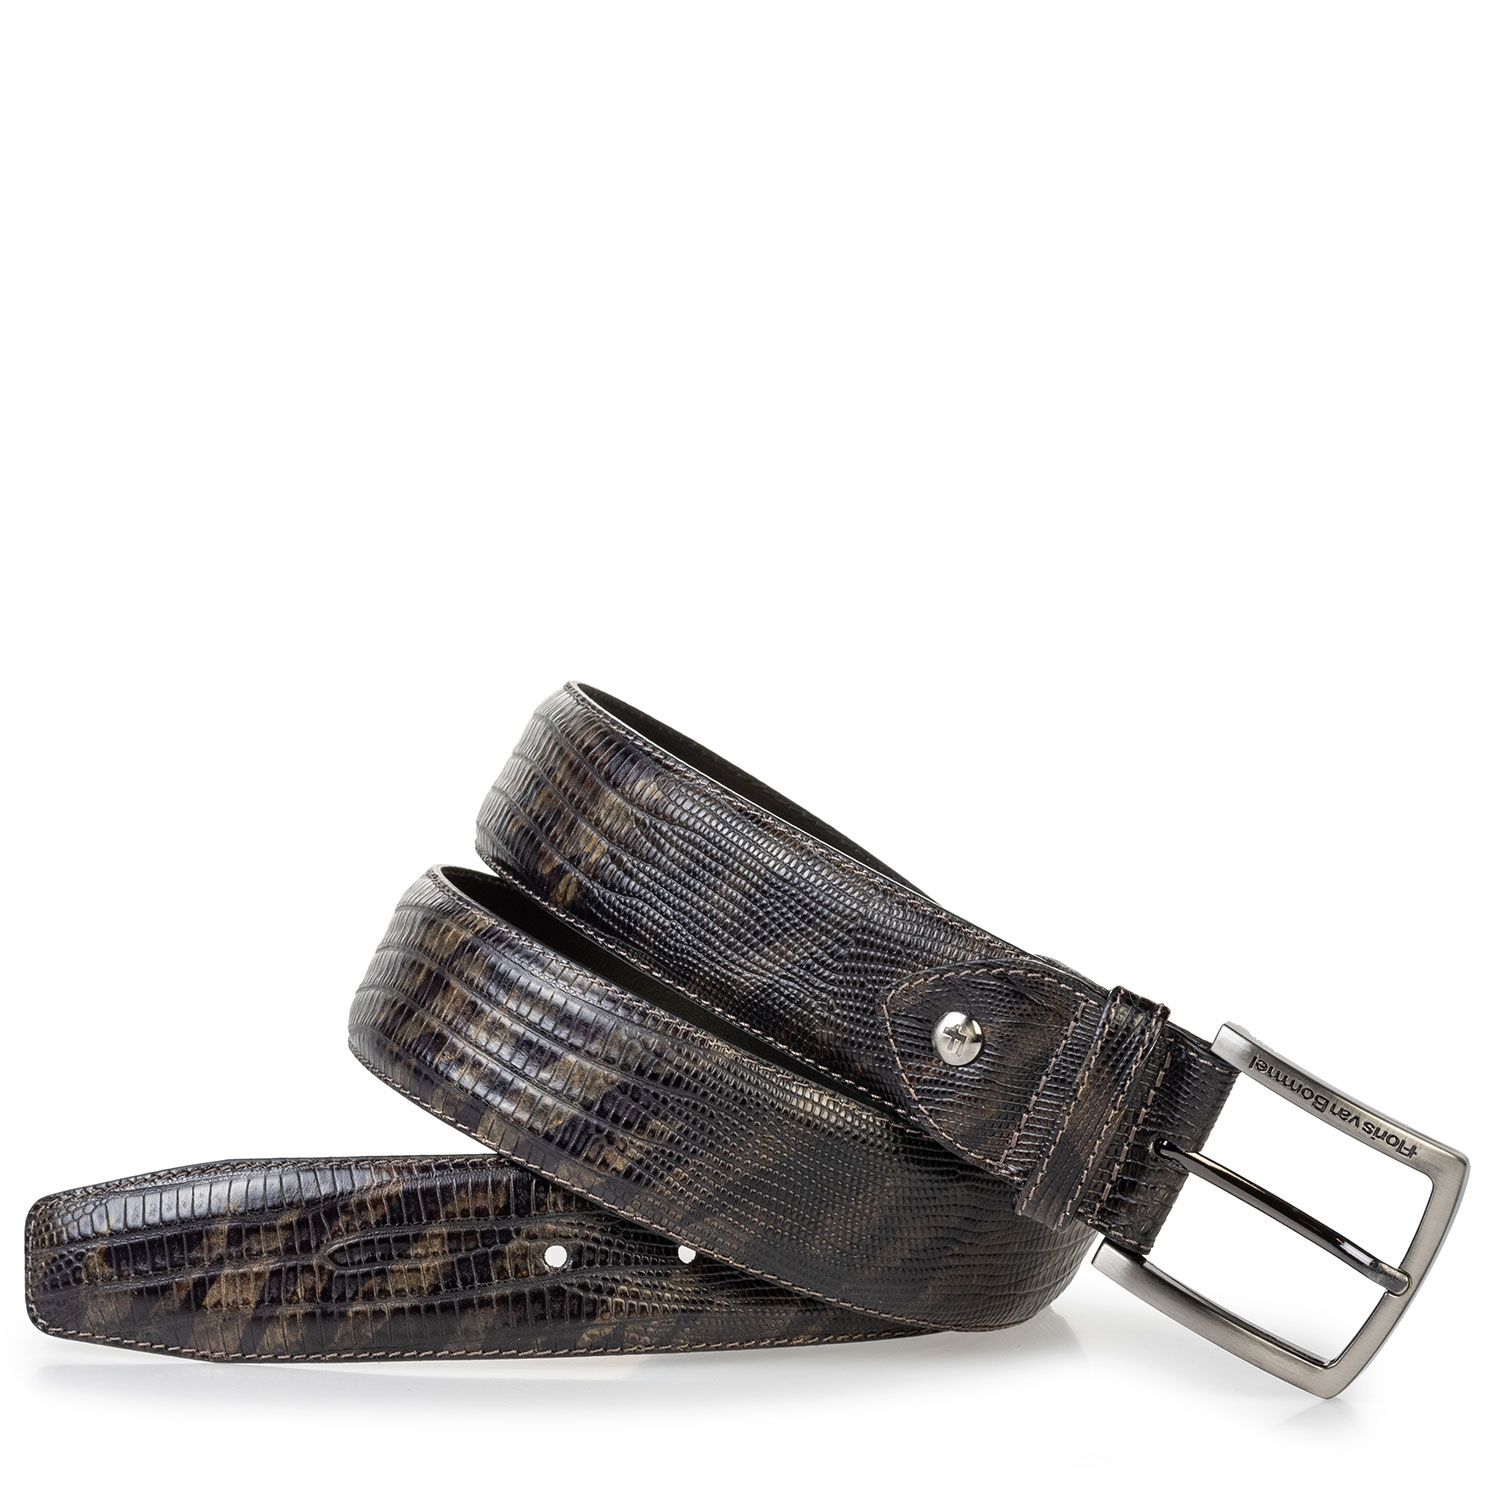 75202/75 - Leather belt lizard print green